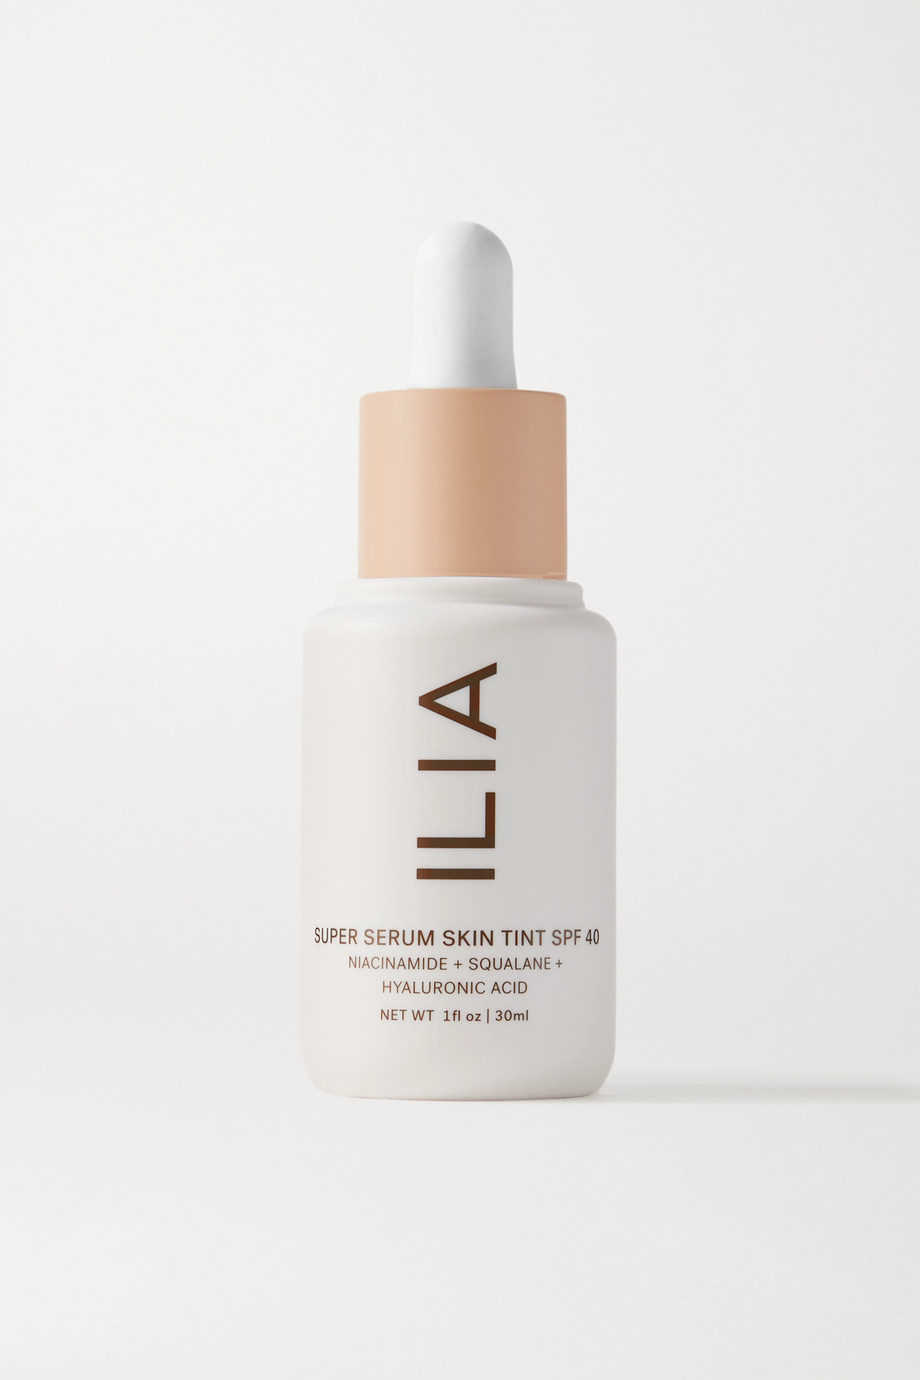 Ilia Super Serum Skin Tint SPF 40 - Tulum ST2, 30ml